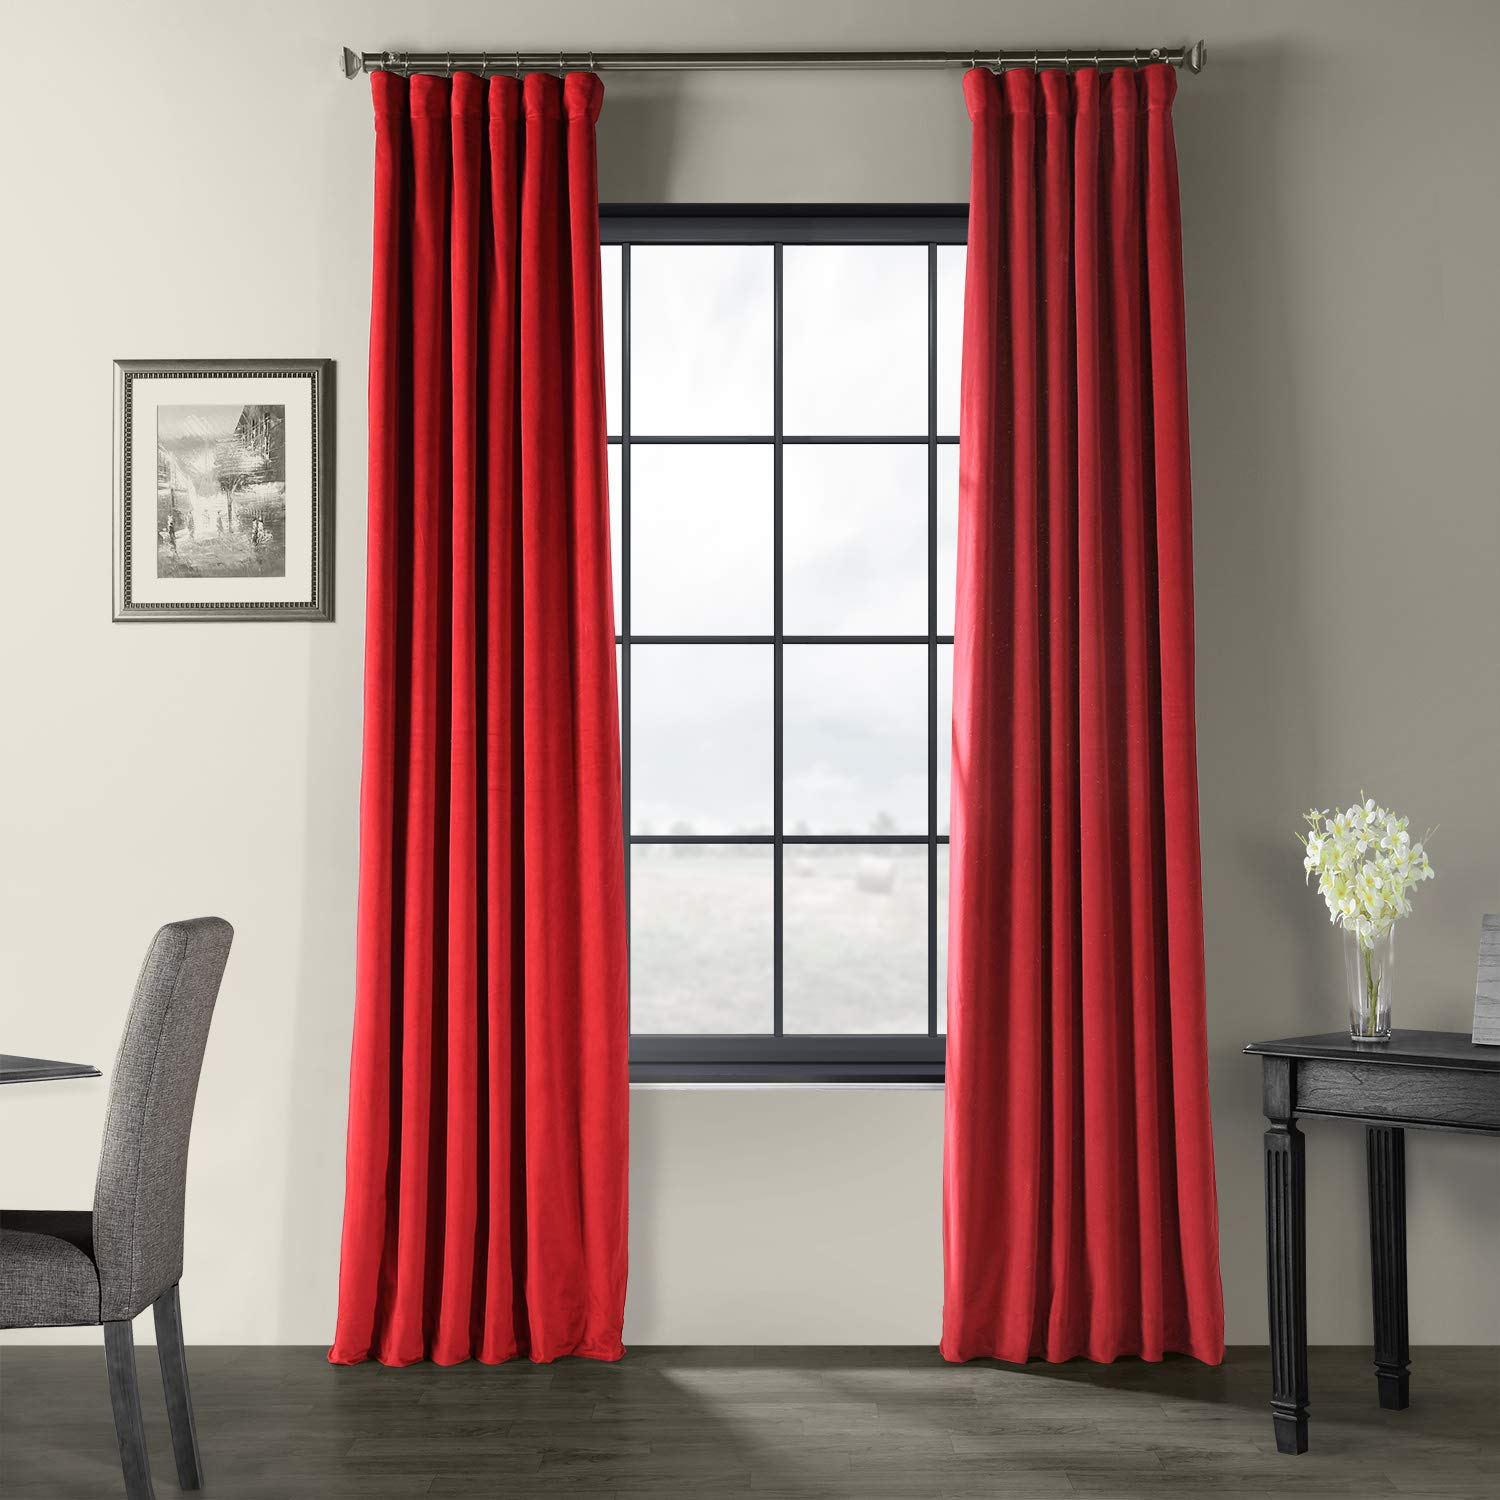 Mgoldccan Red 50 X 108 VPCH-160405-96 Signature Blackout Velvet Curtain,Cool Beige,50 X 96